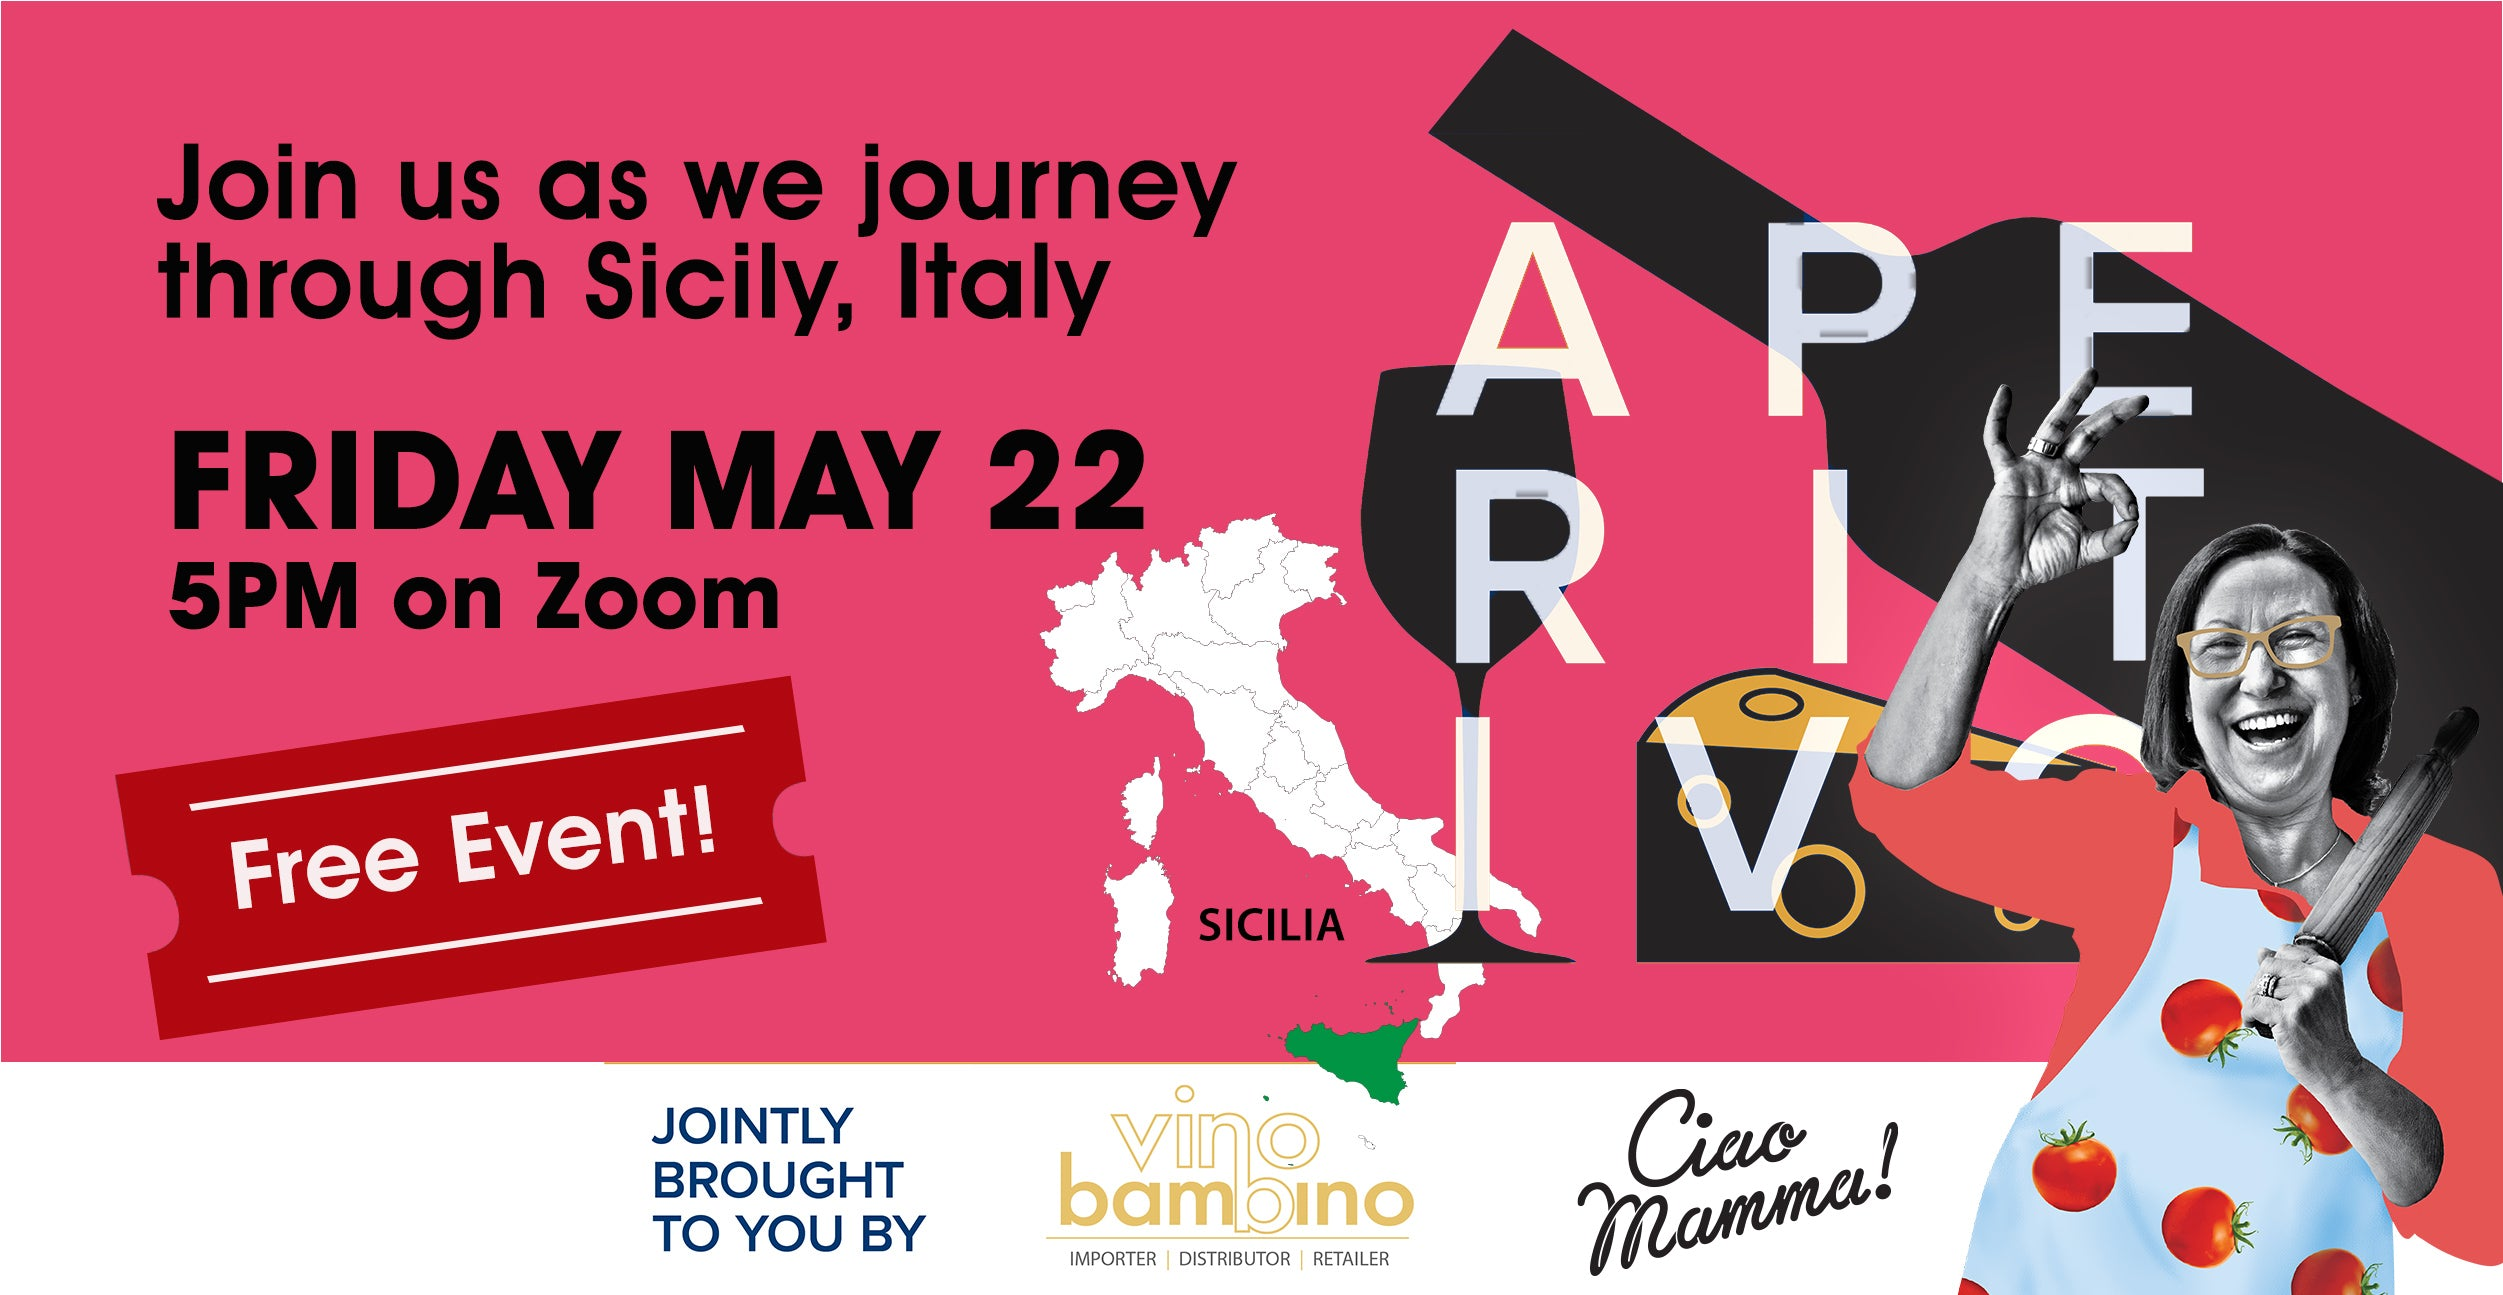 Free Event: Journey through Sicily Zoom Aperitivo on  Friday 22nd of May at 5pm.